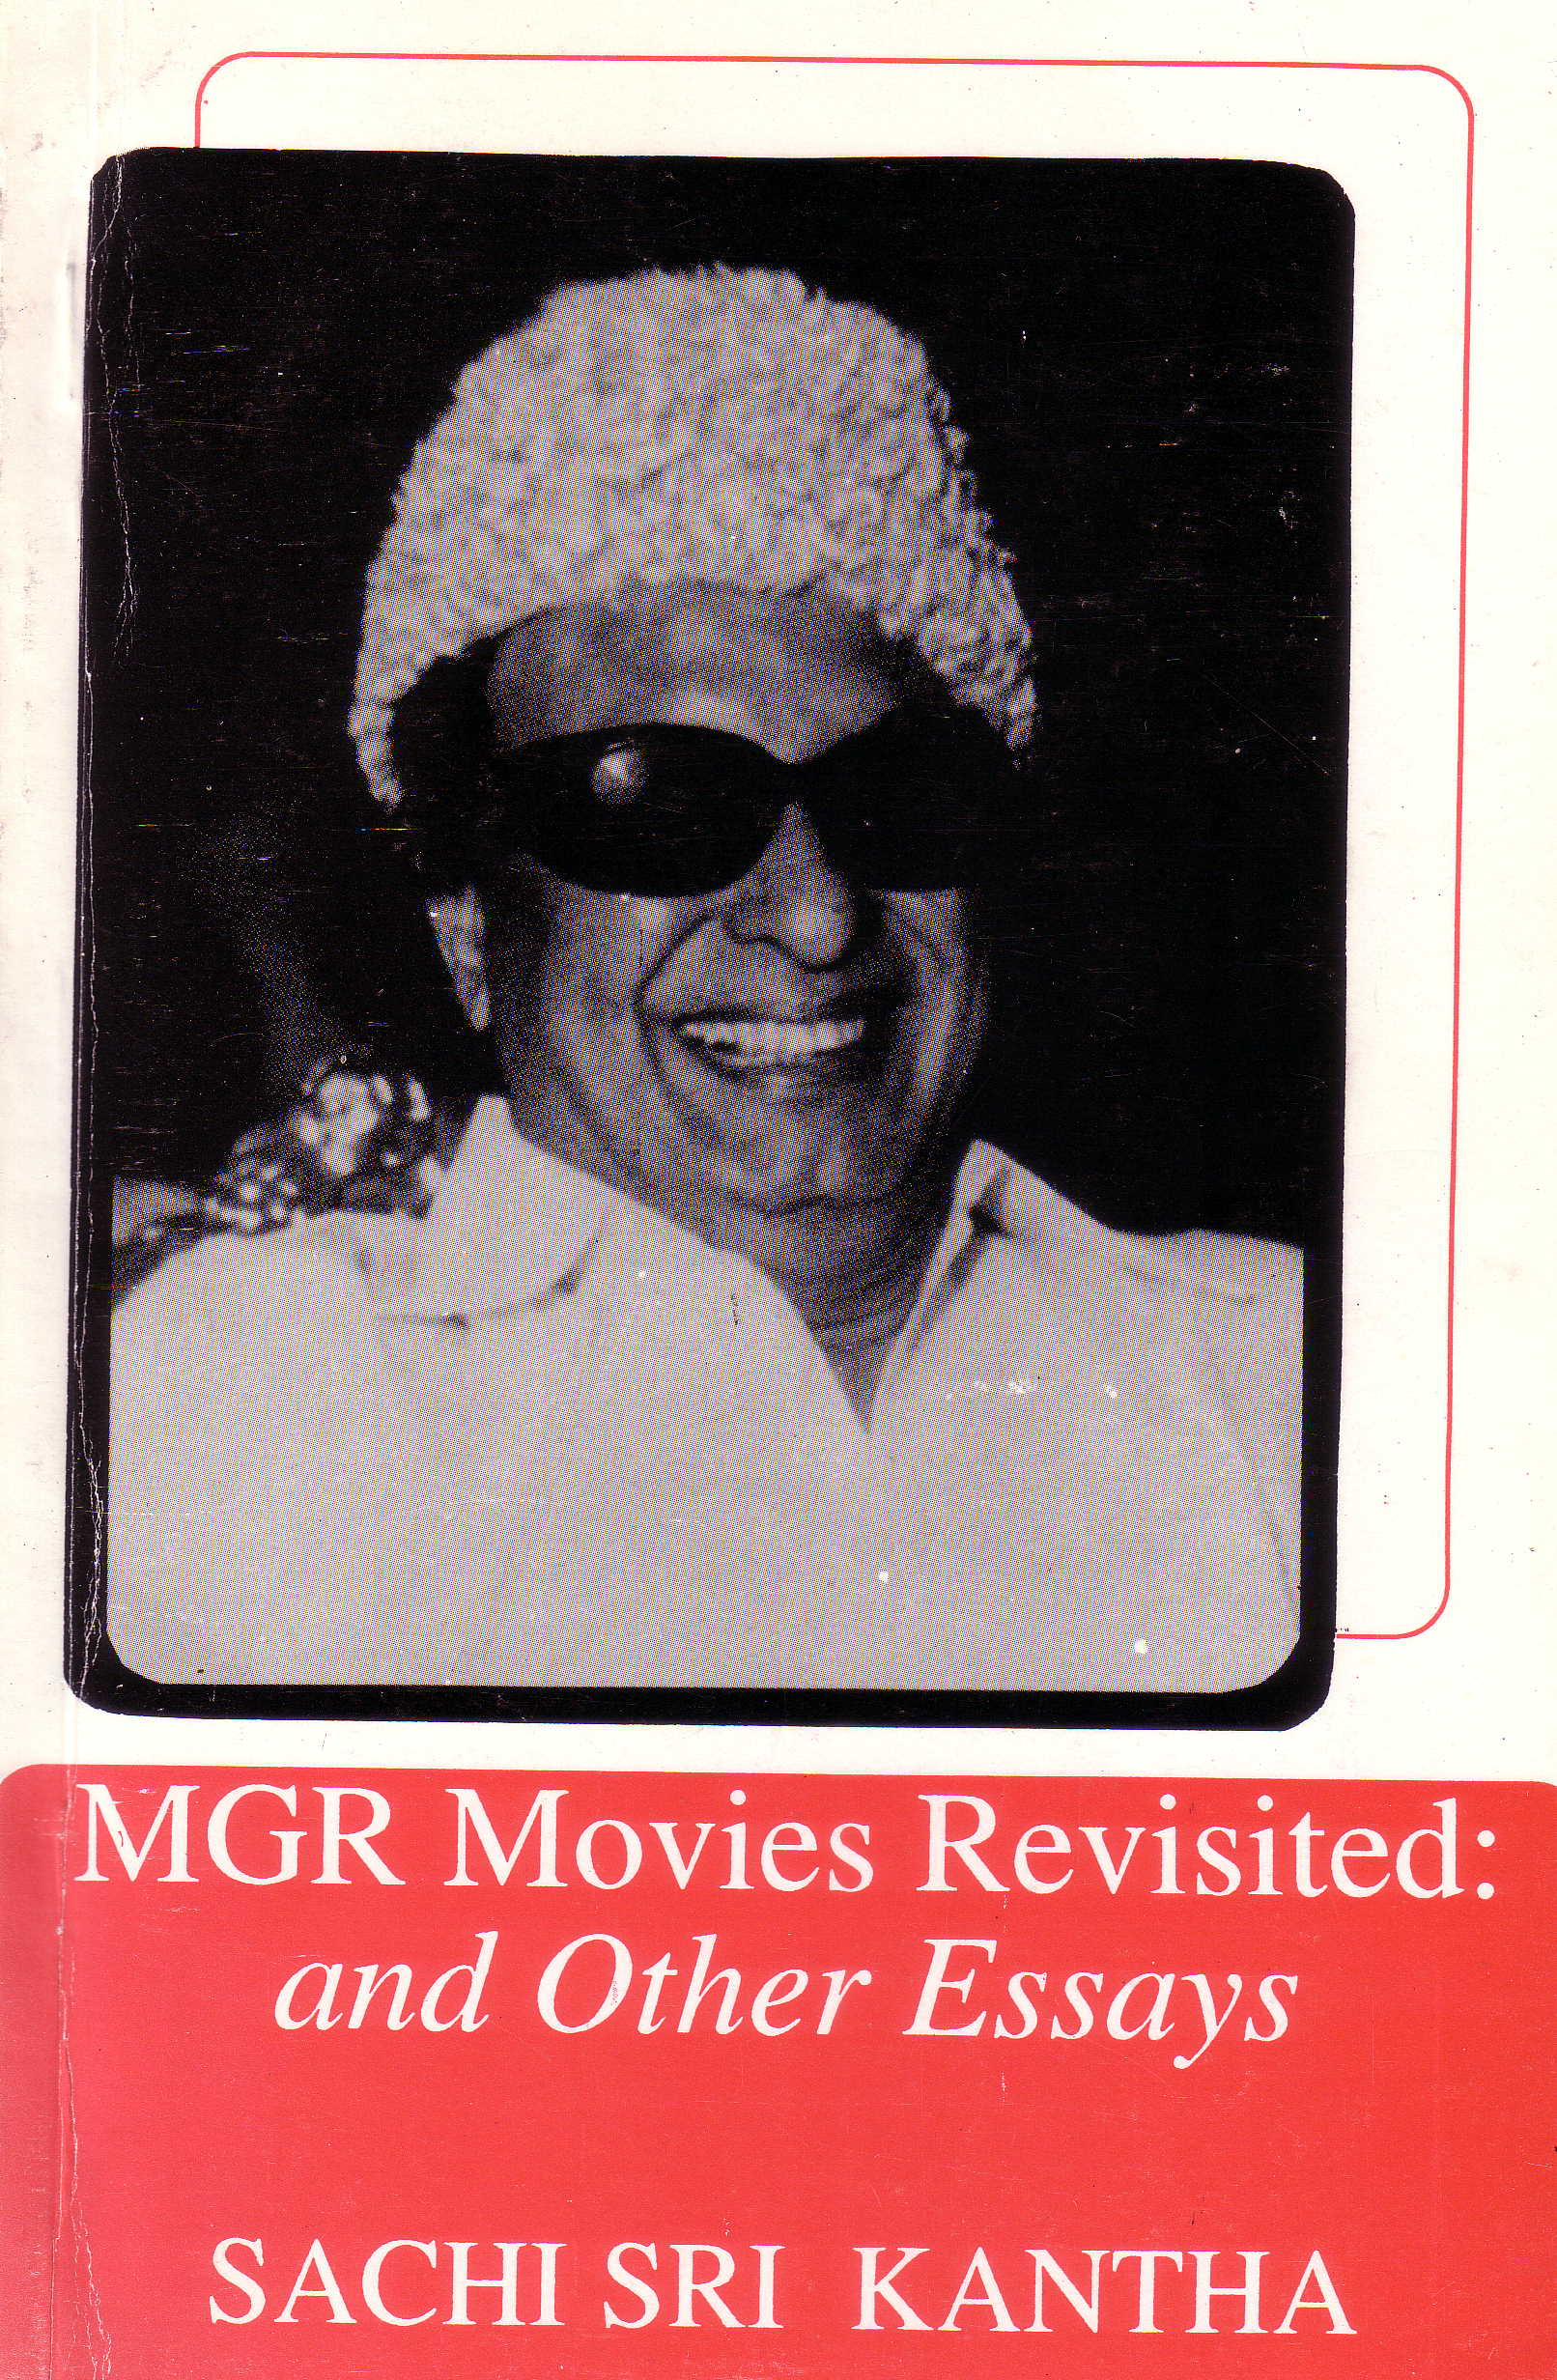 MGR Movies Revisited book cover